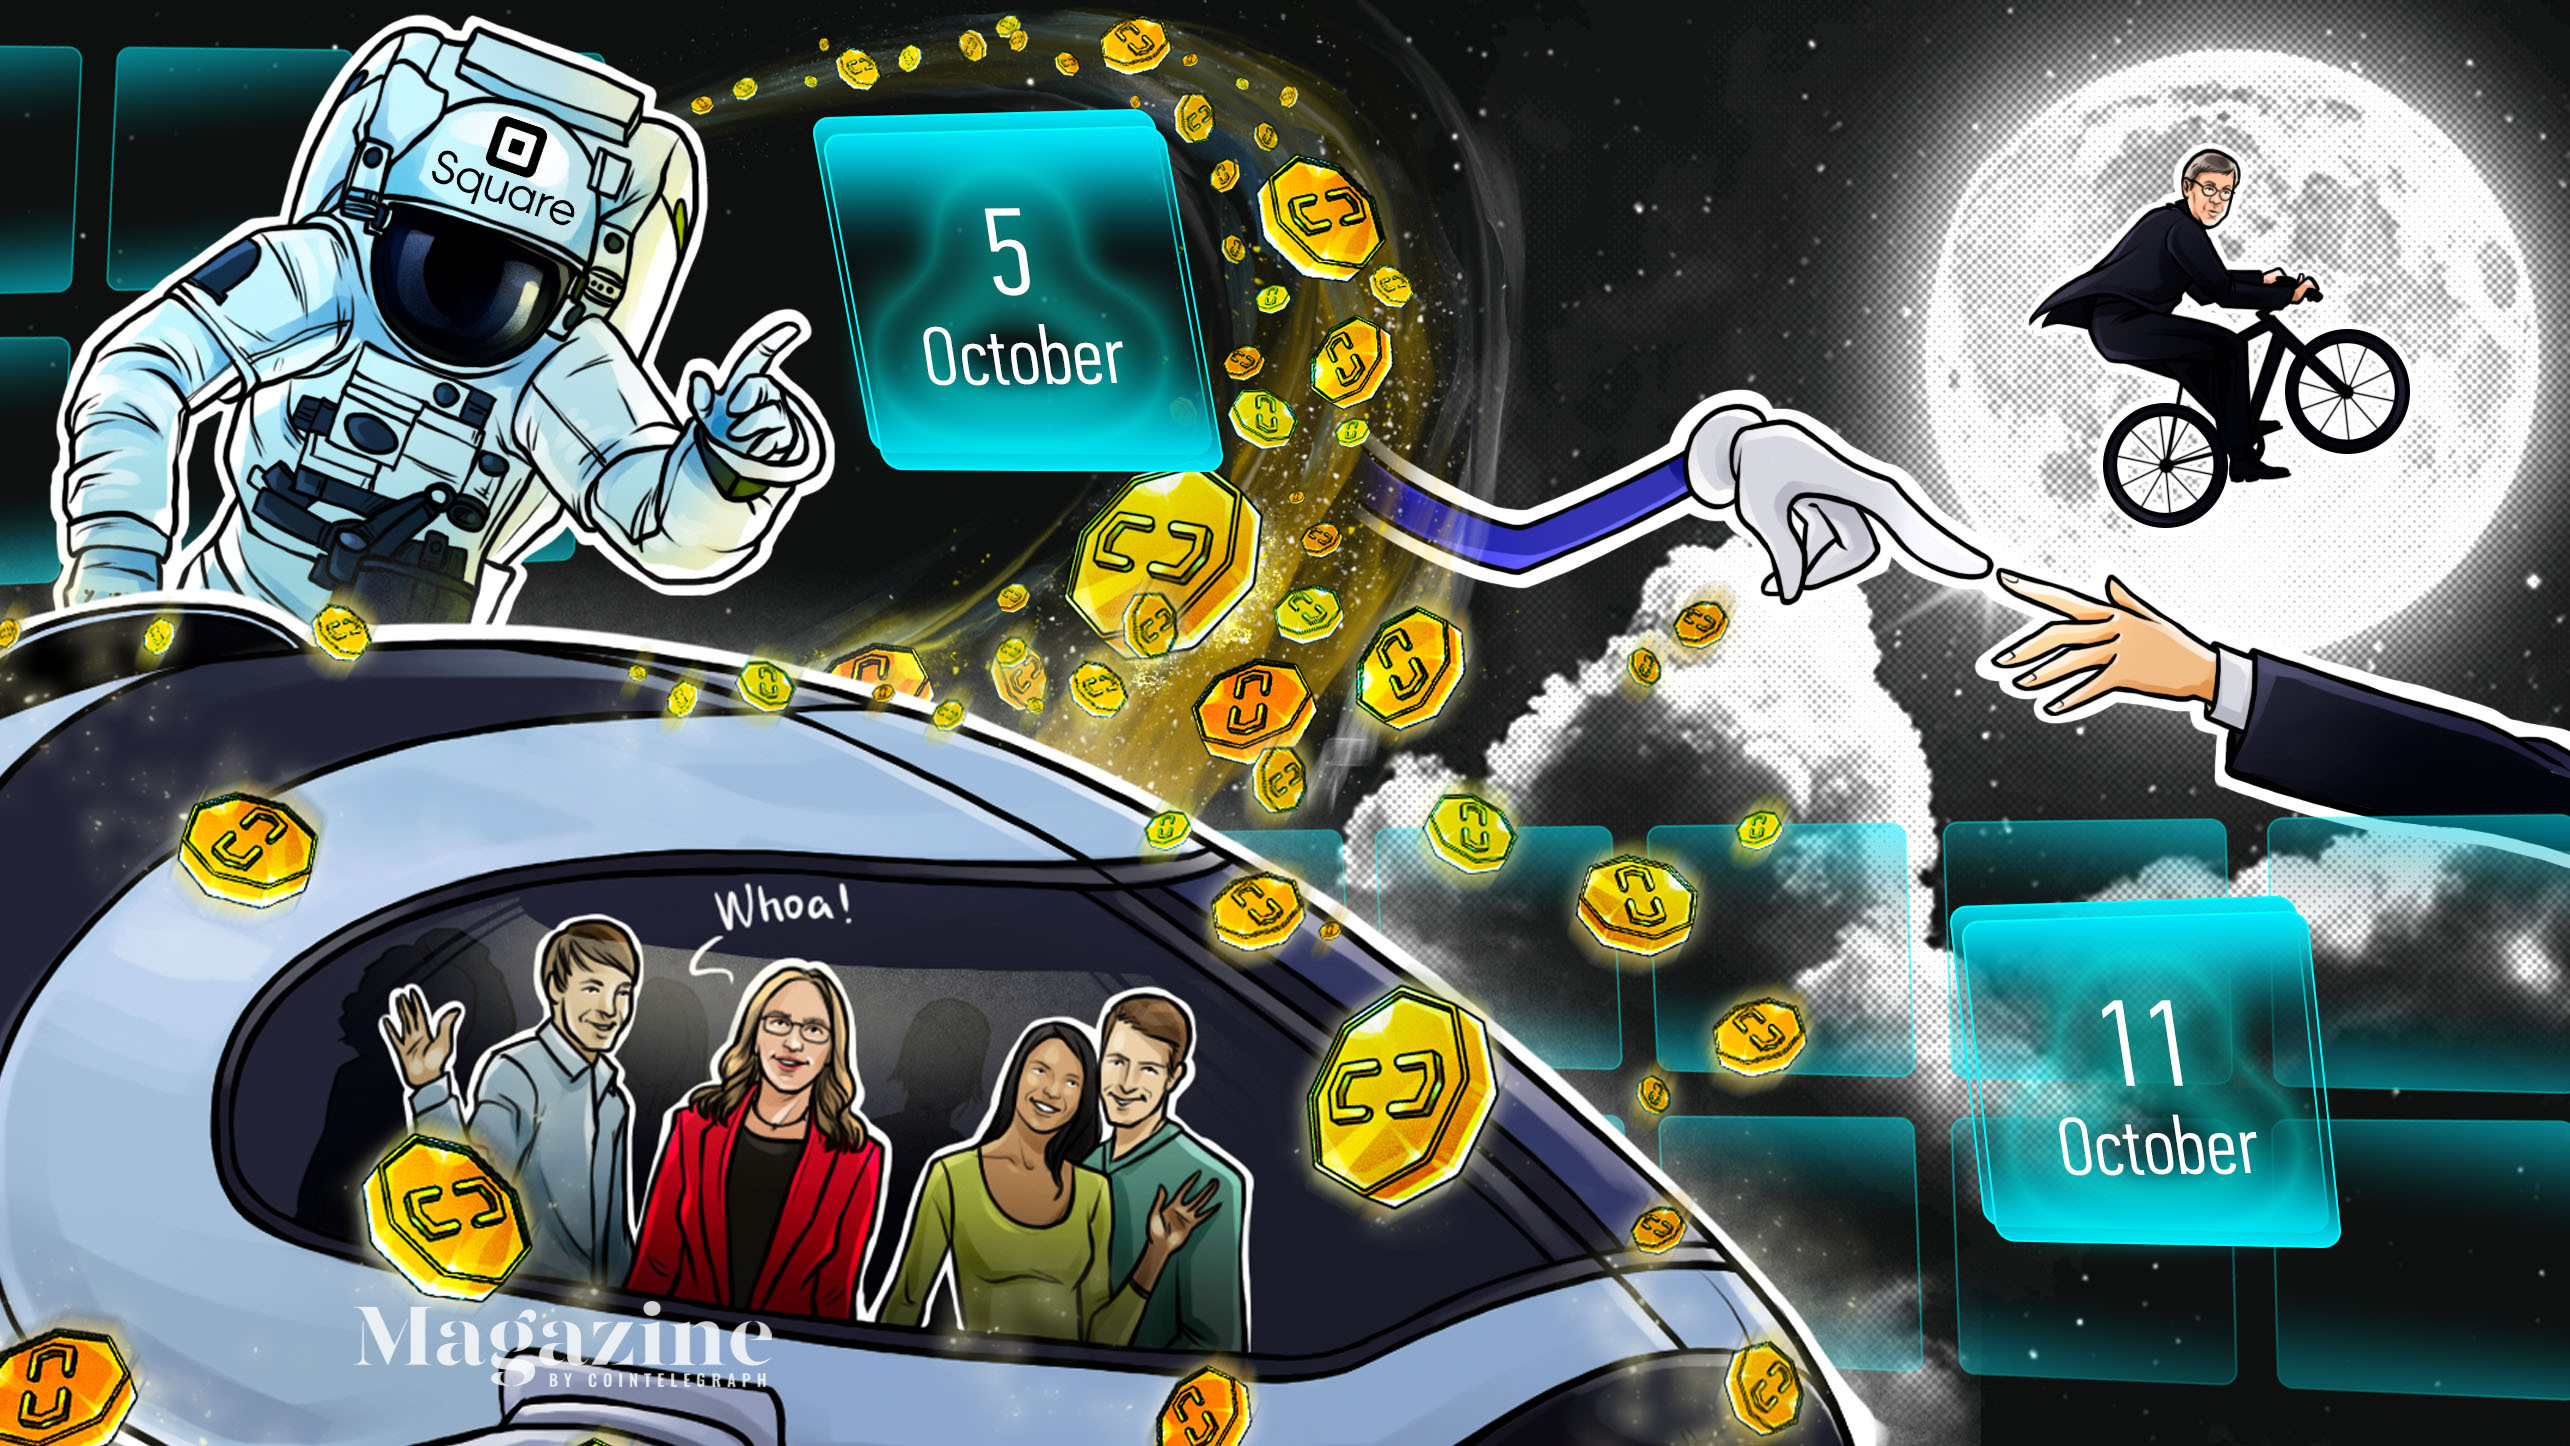 Bitcoin rallies, McAfee compares prison to Hilton, digital yuan airdrop: Hodler's Digest, Oct. 5–11